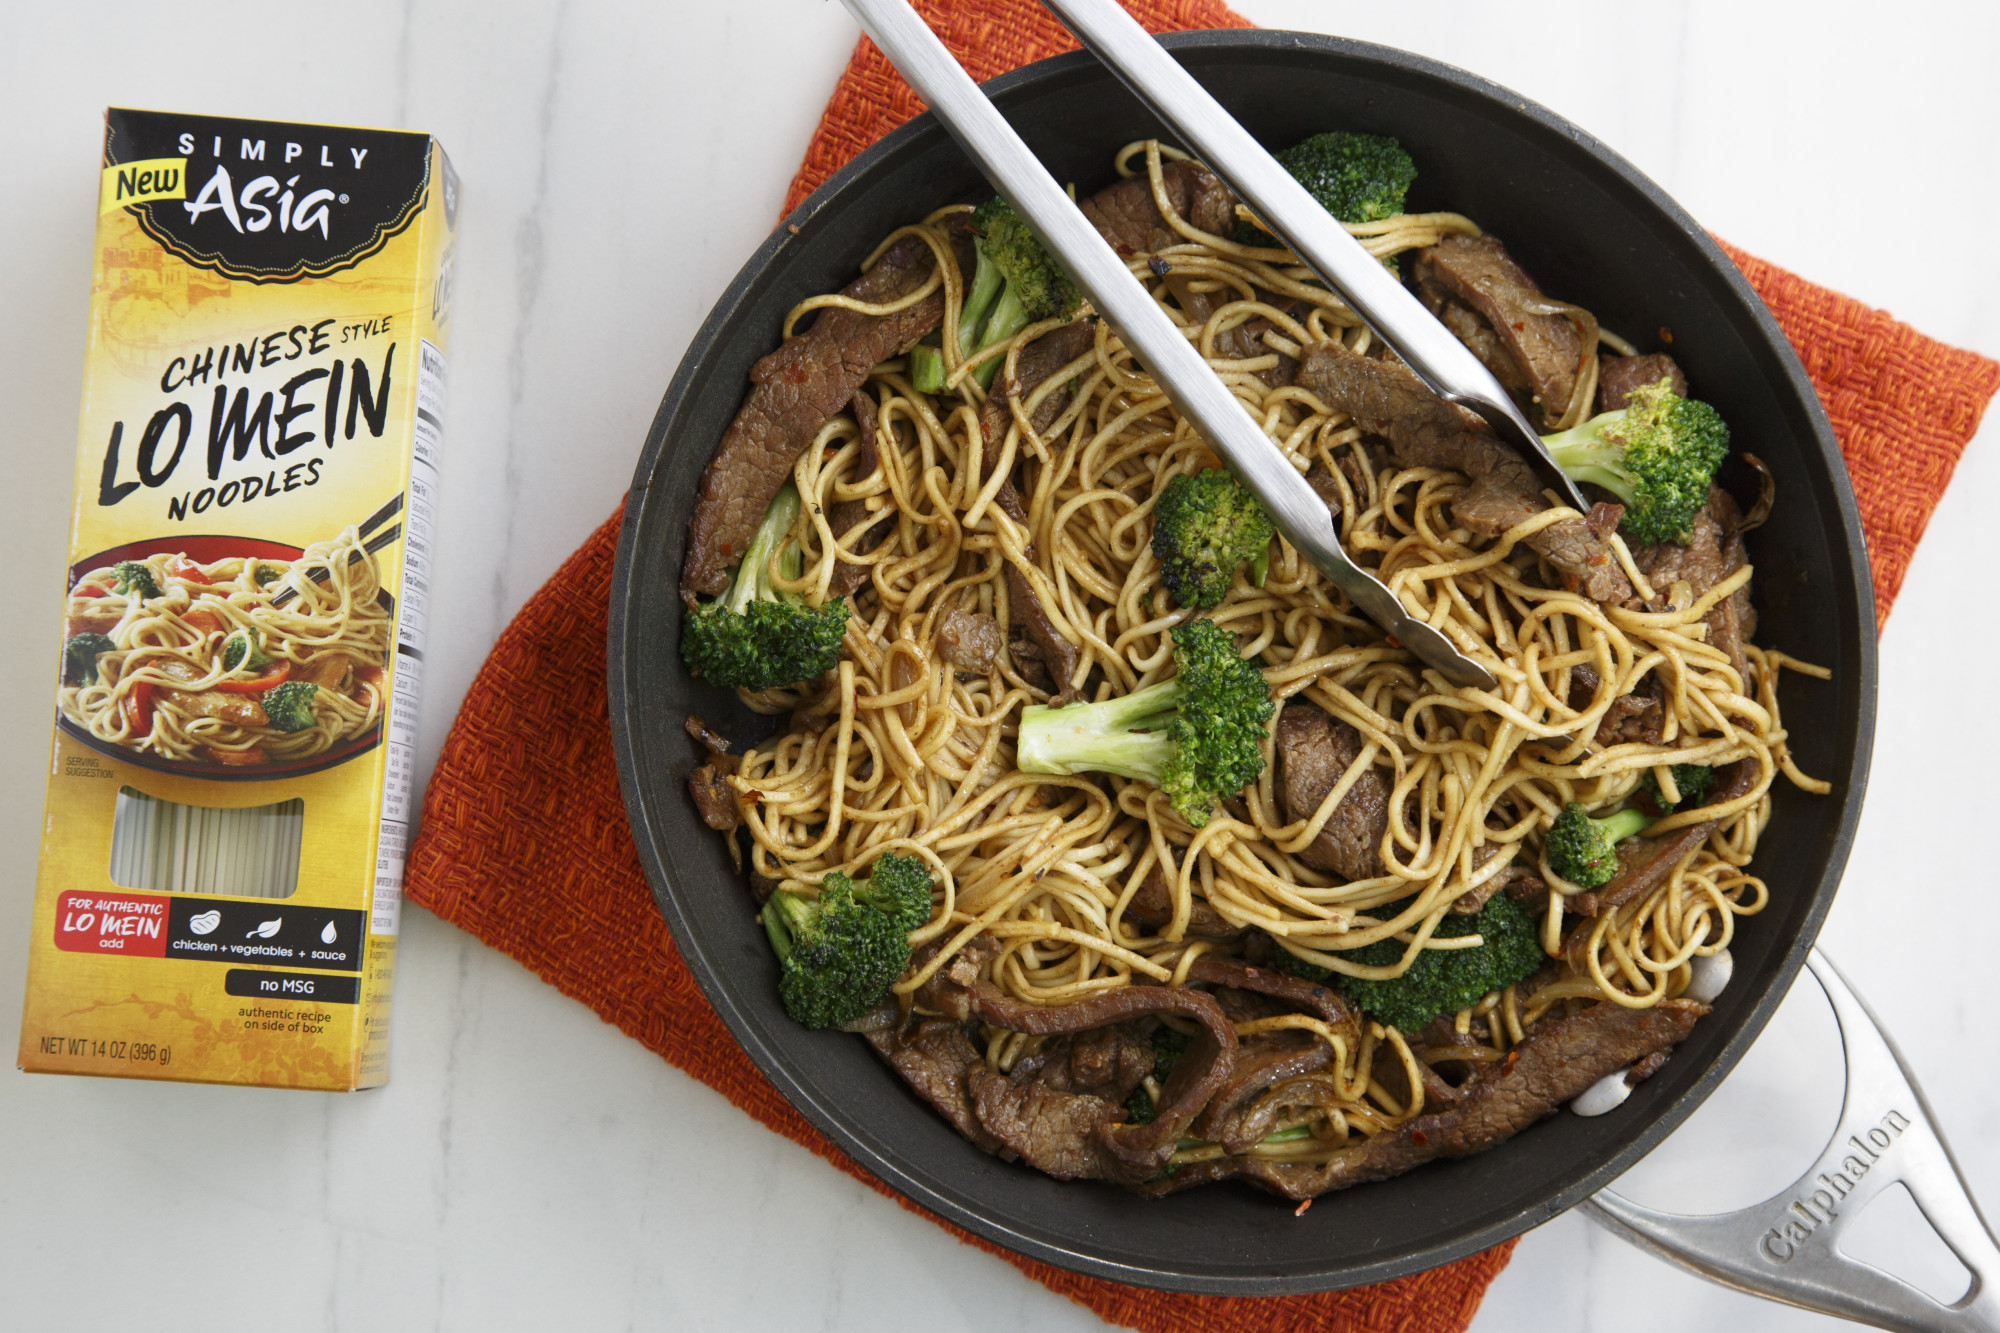 Simply Asia Chinese Style Lo Mein Noodles 14 Oz Walmart Com Walmart Com